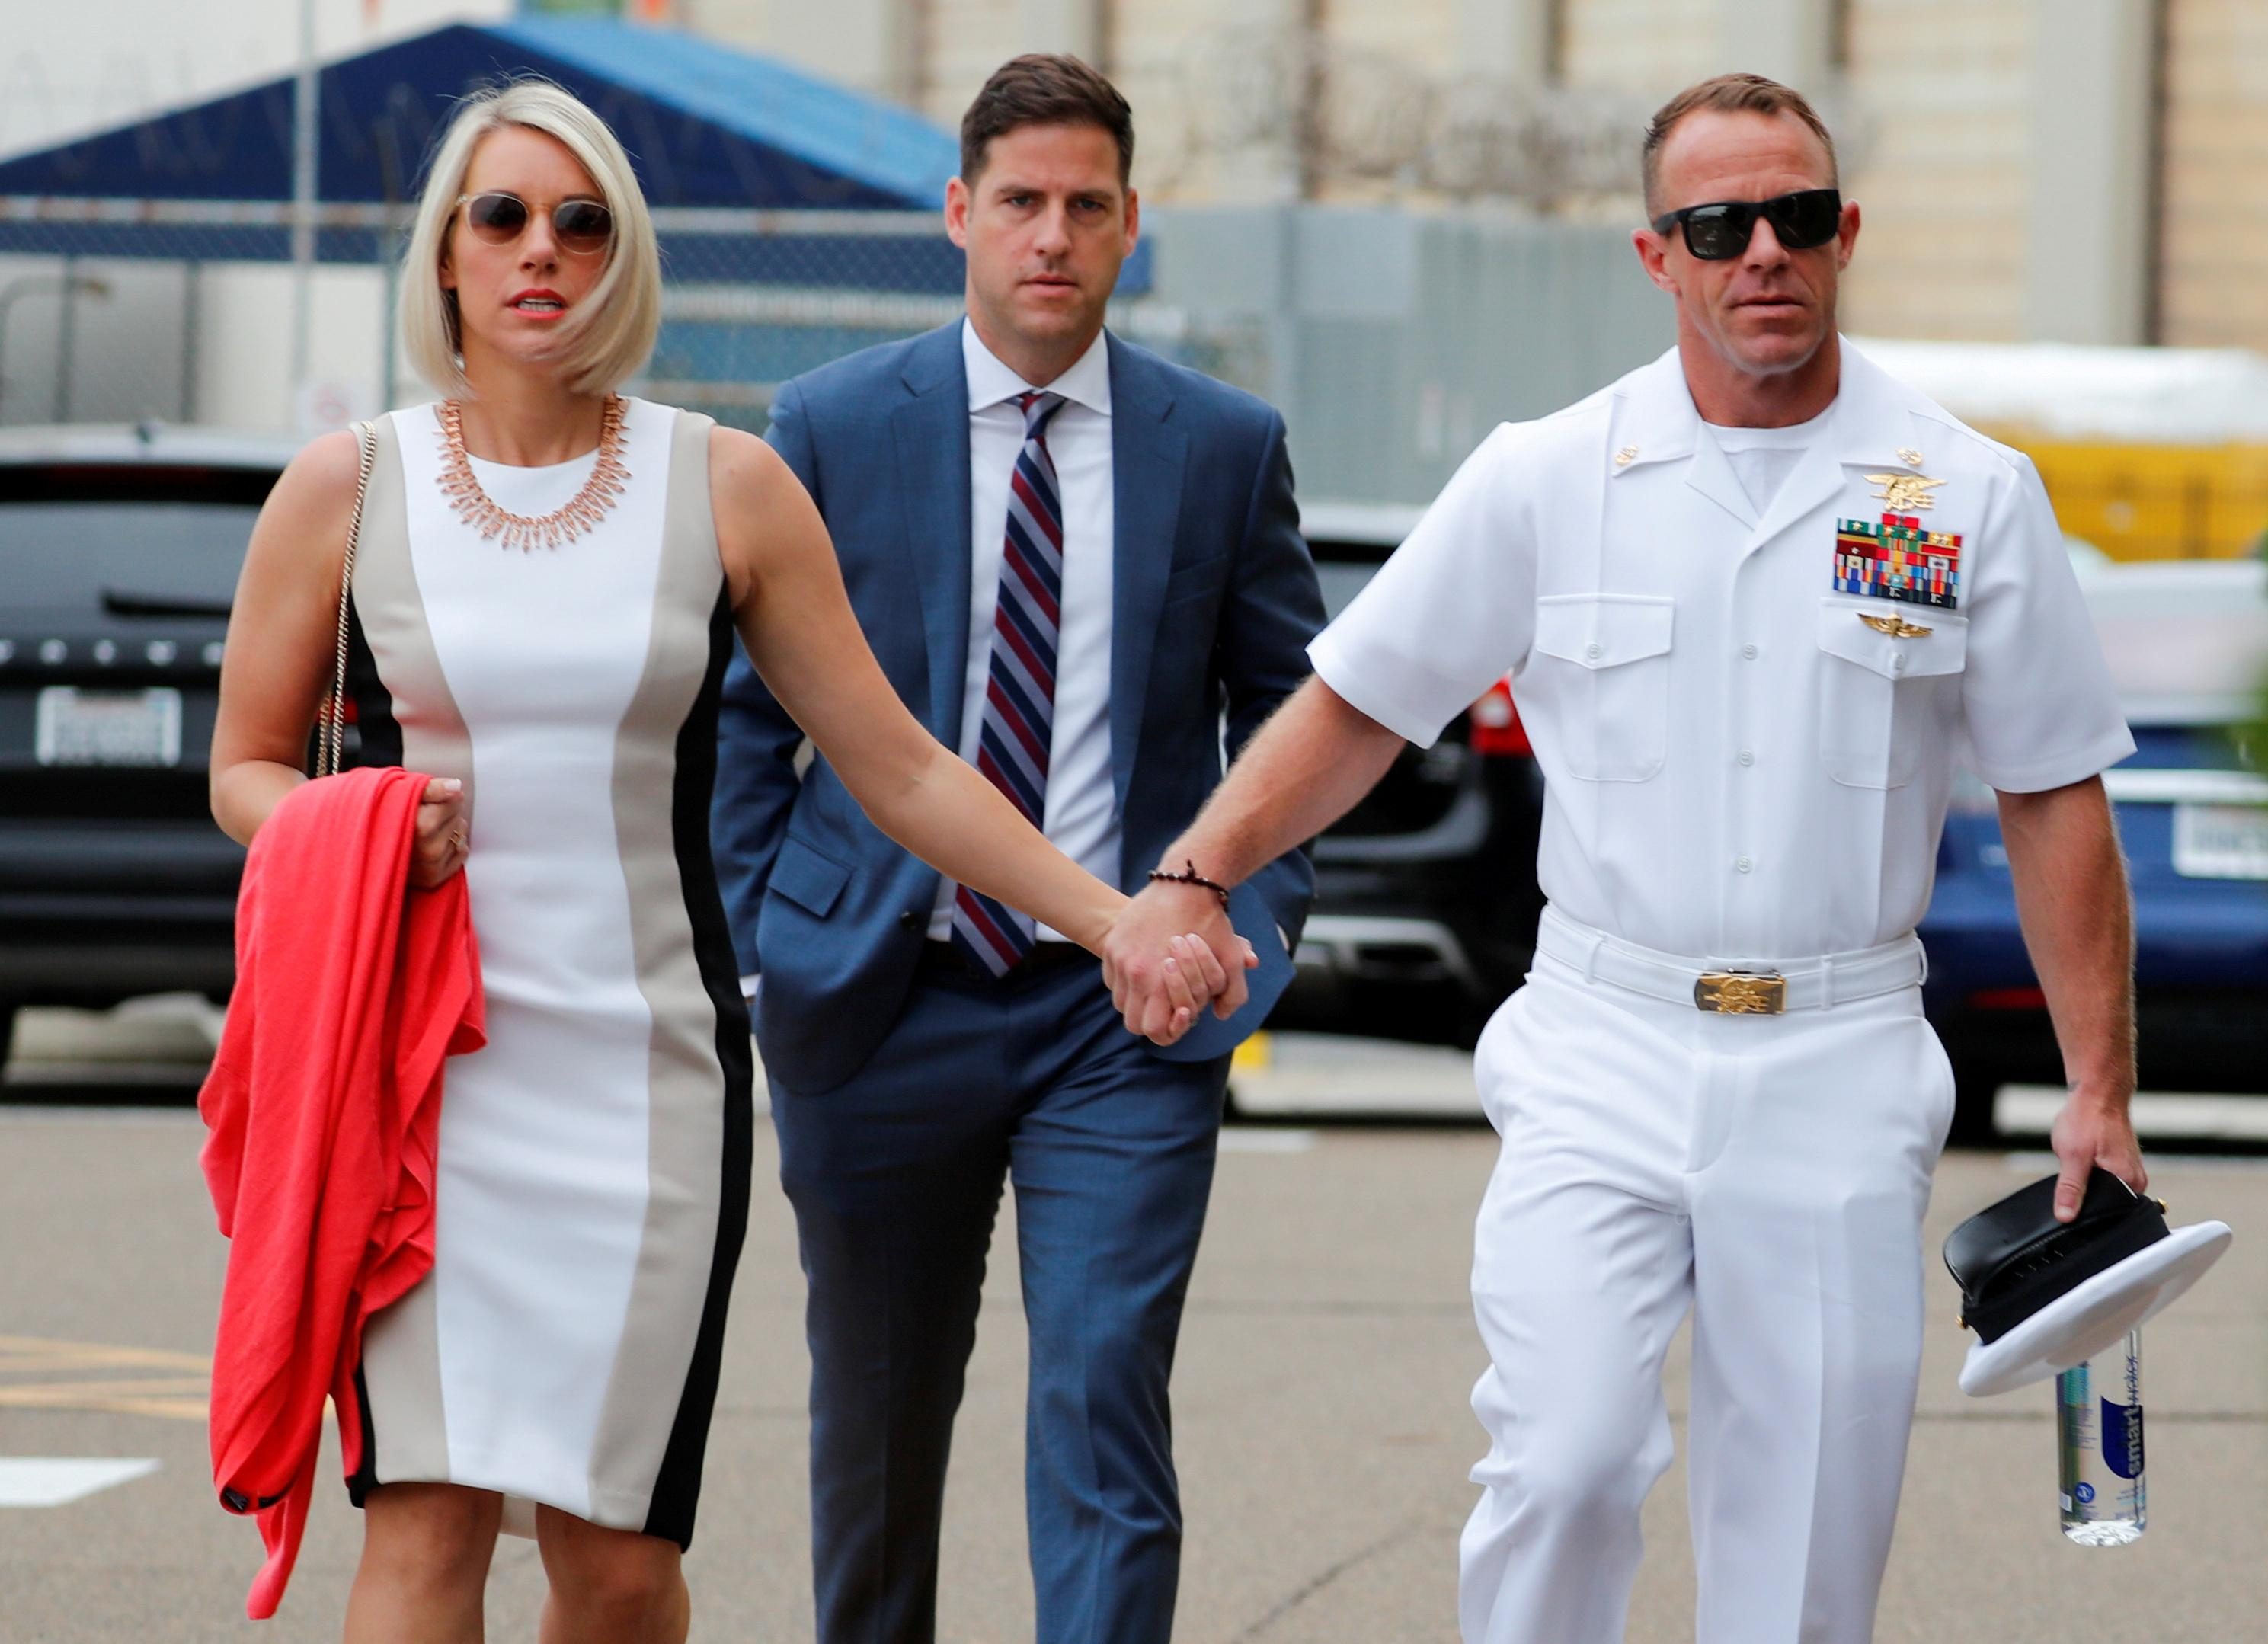 U.S. Navy SEAL charged with war crimes had confidence of his immediate superior